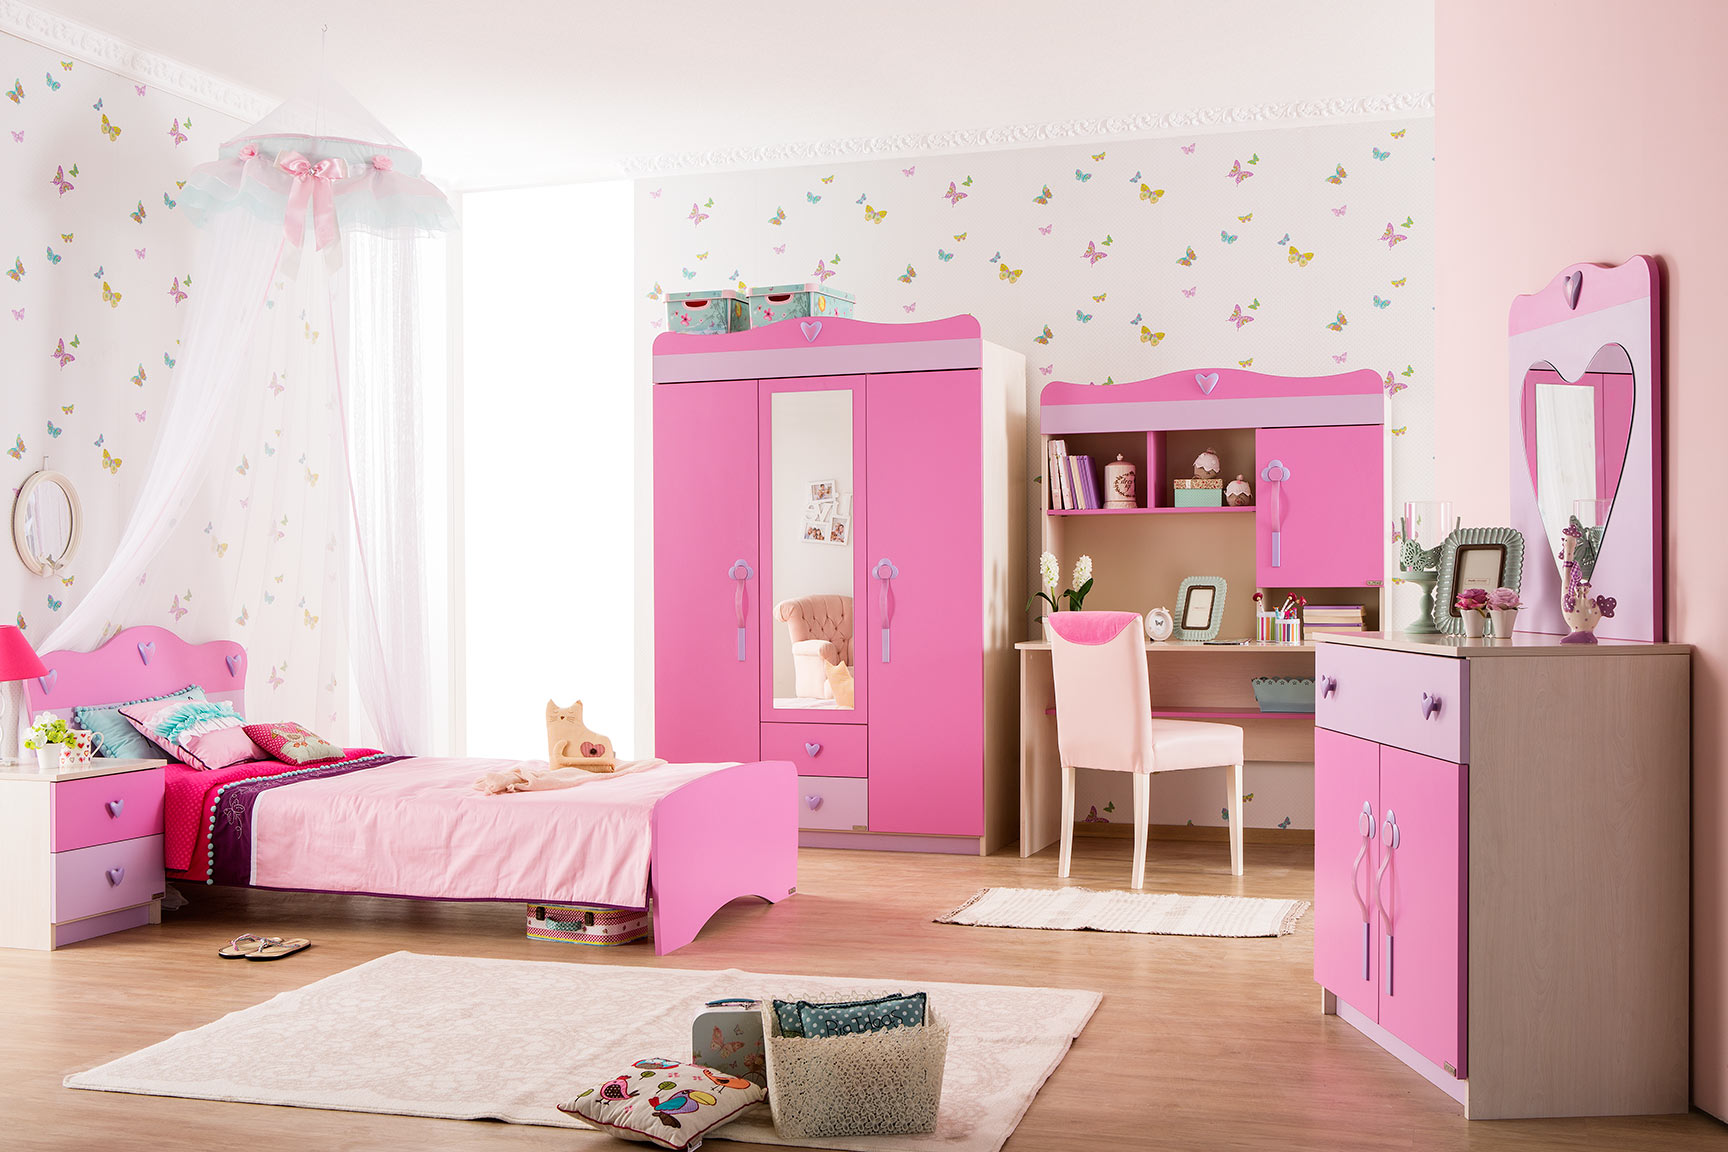 Slaapkamer kinderkamer ~ consenza for .